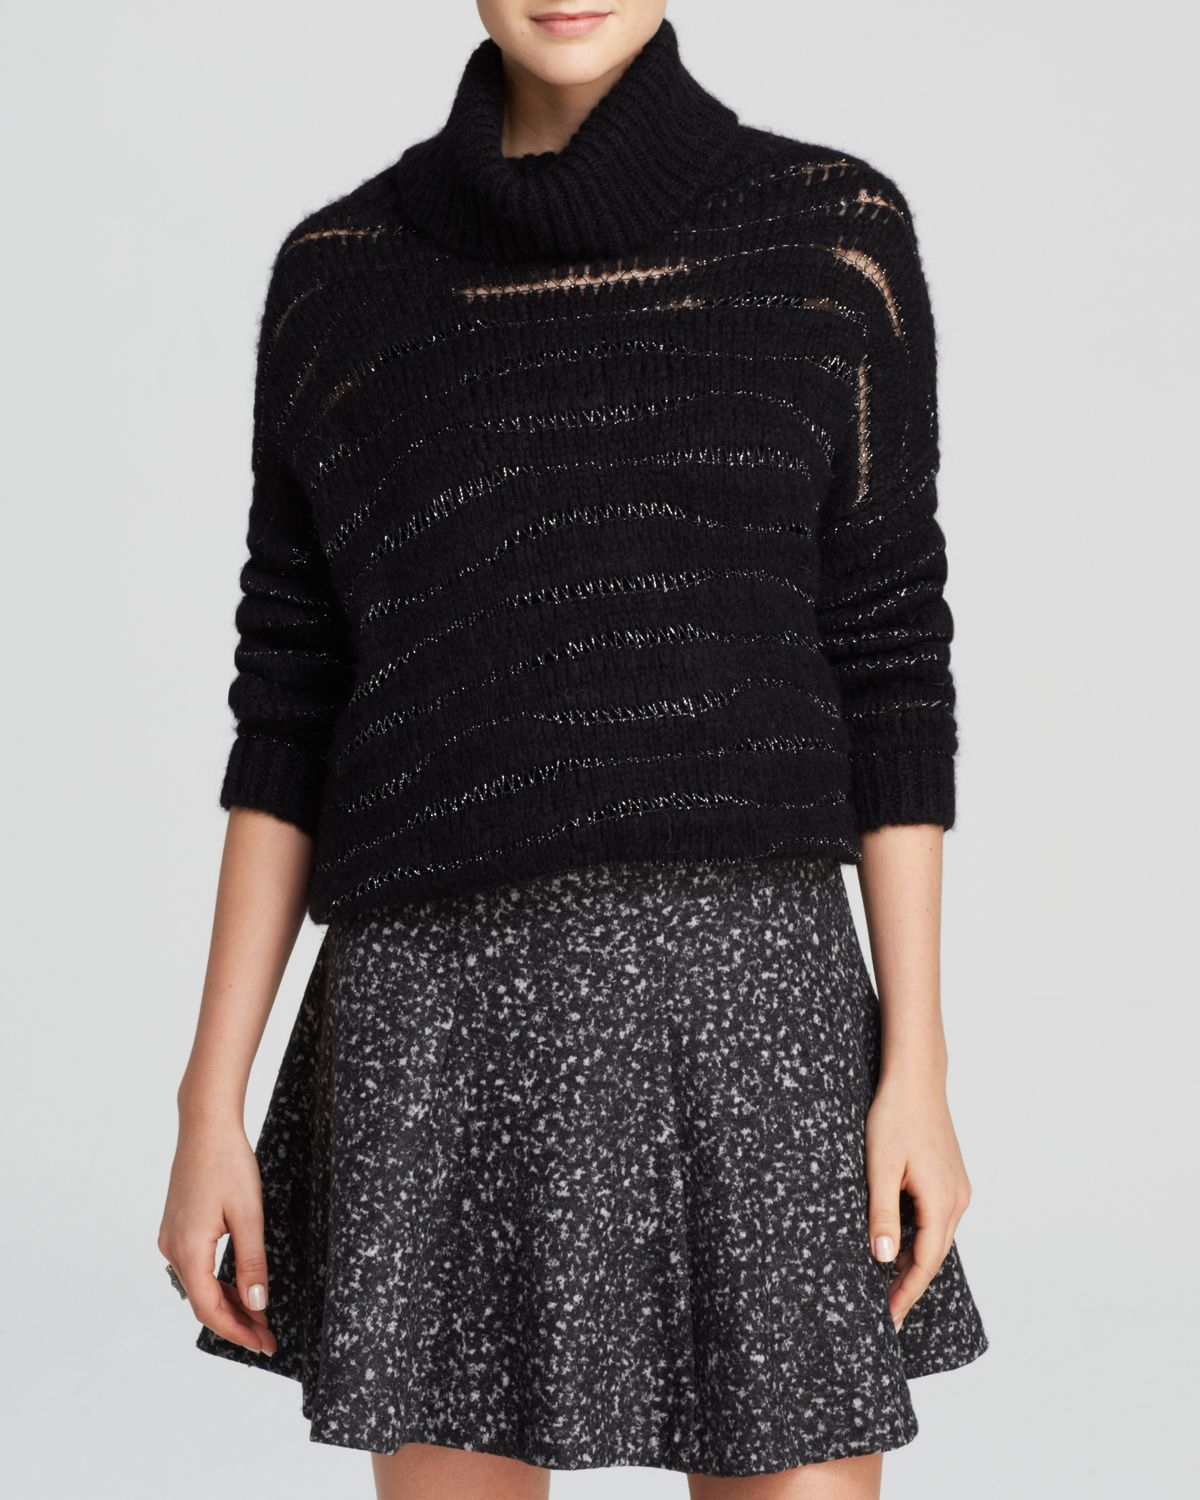 Knitting Essentials White Sparkle Wool : Nanette lepore sweater sparkle yarn turtleneck in black